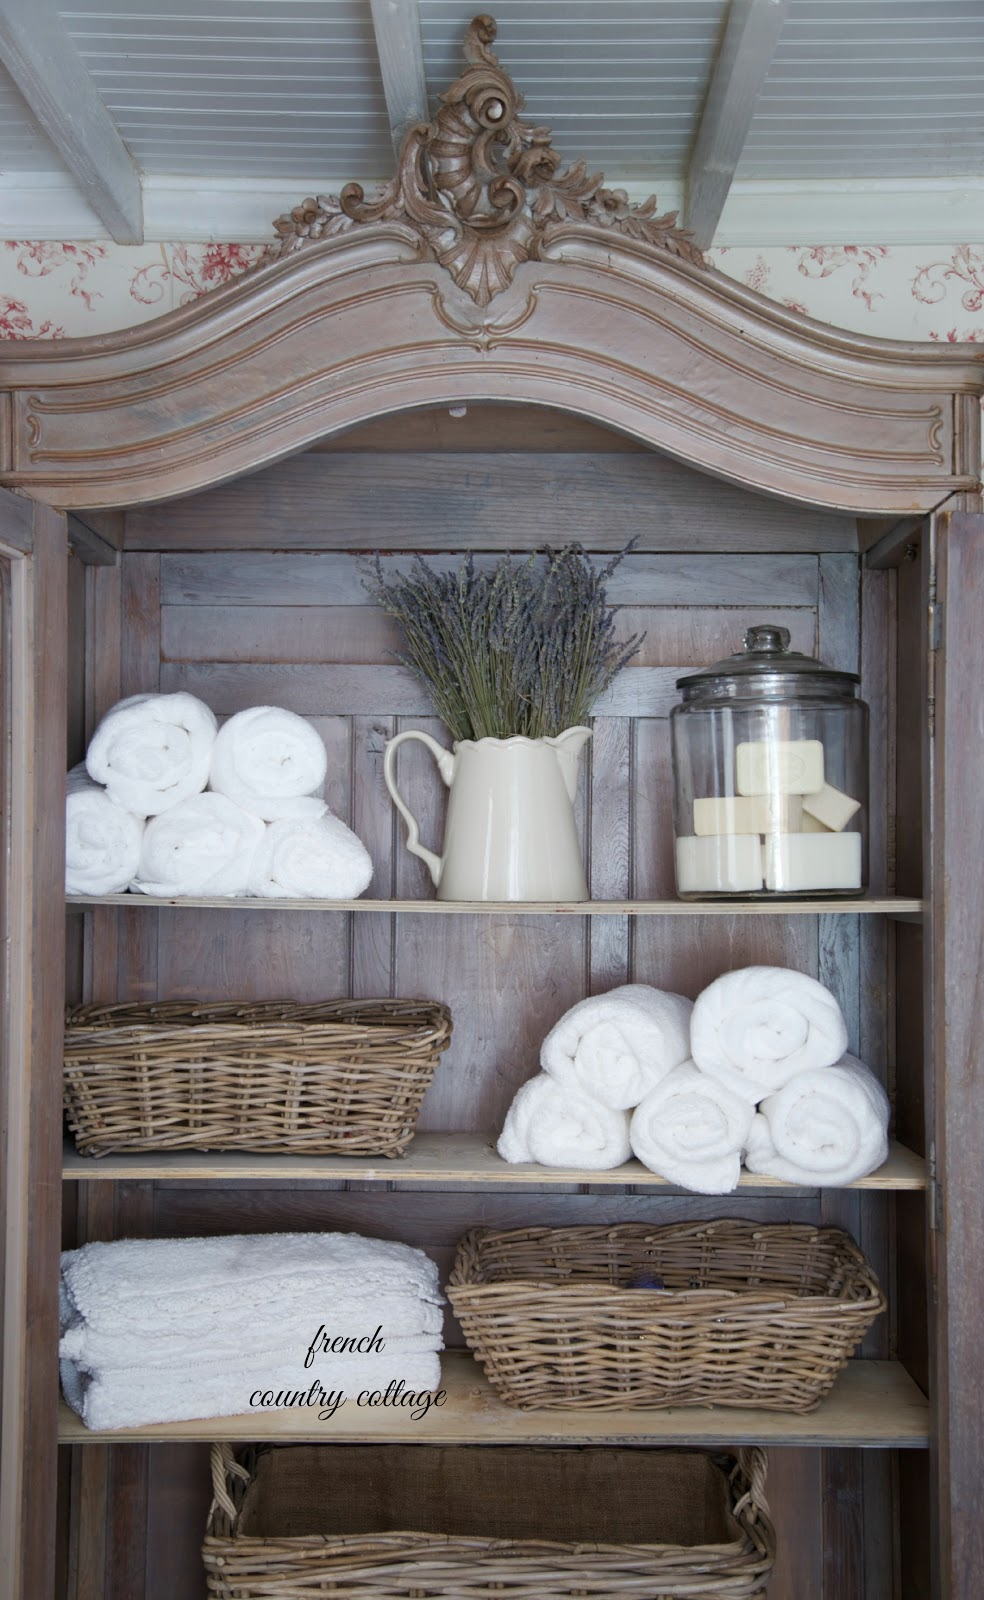 Crushing on baskets french country cottage for French country cottages